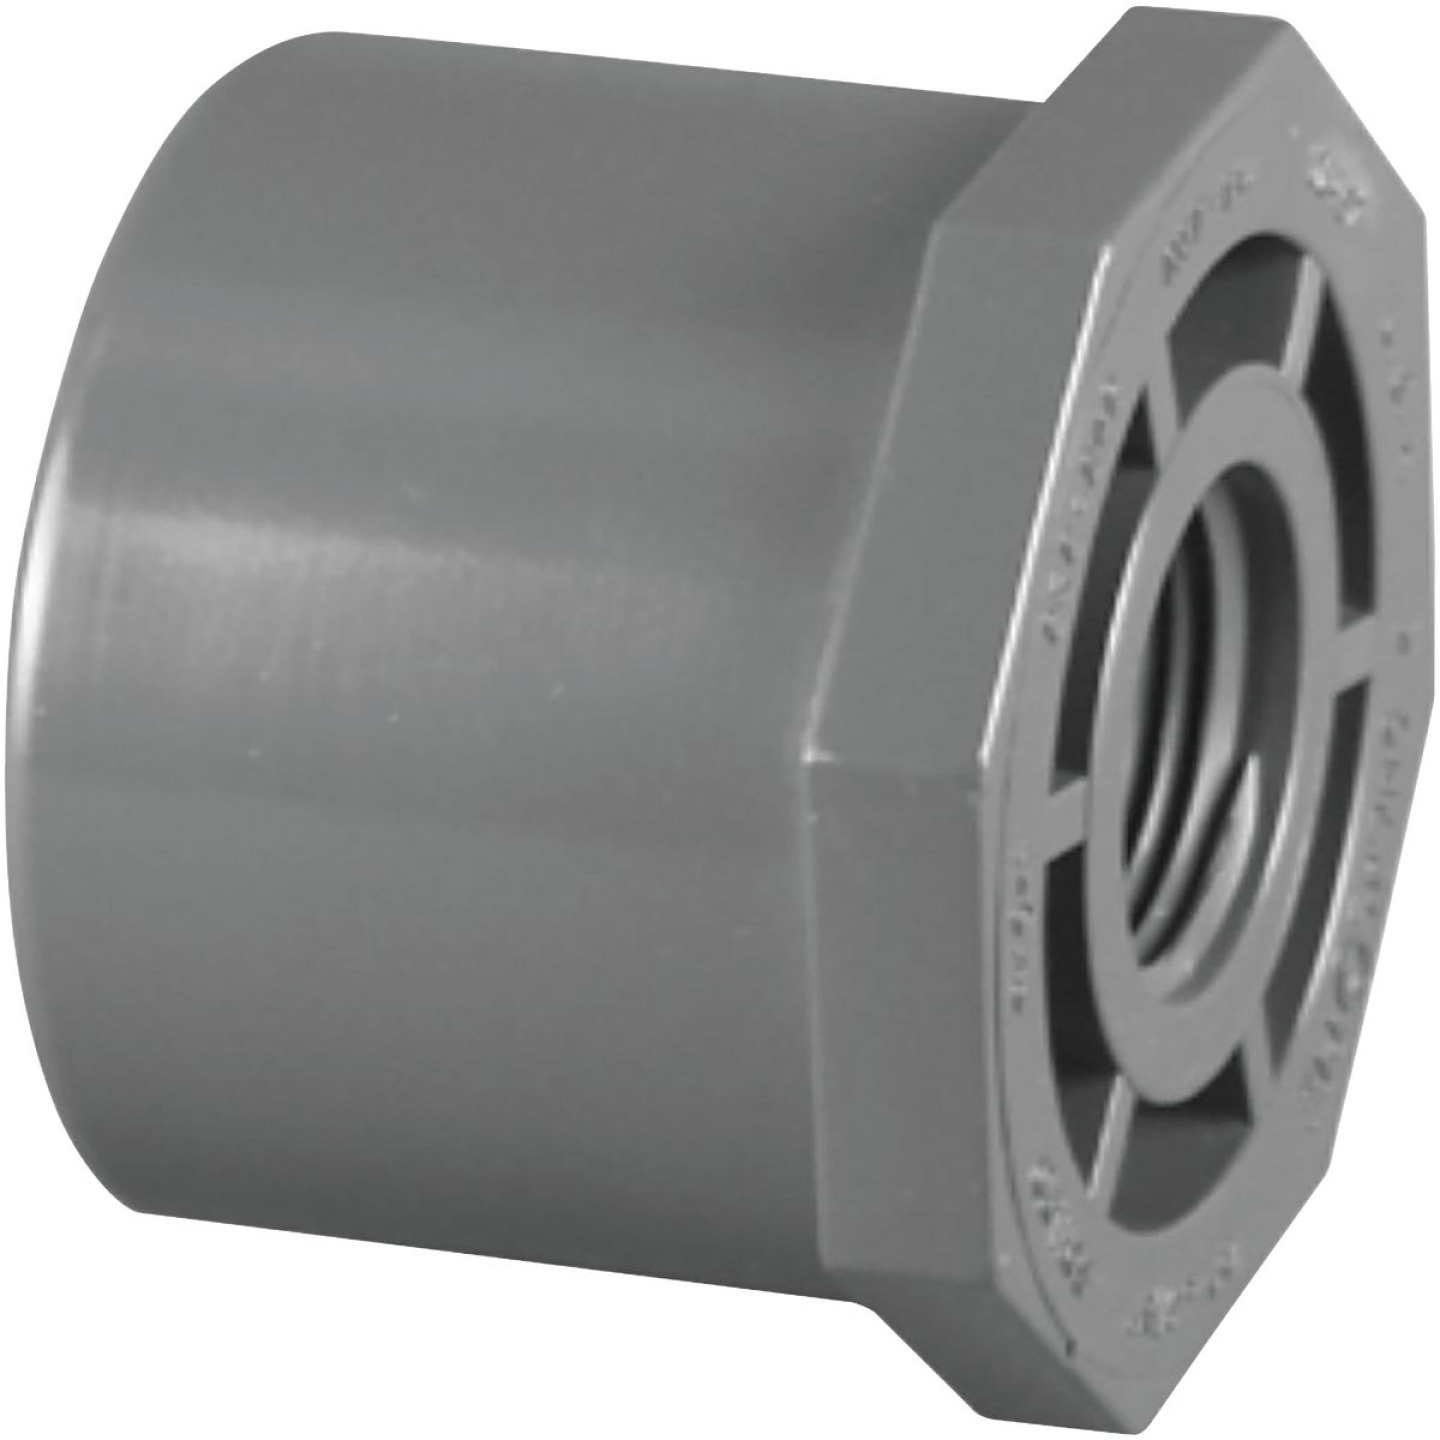 Charlotte Pipe 2 In. Spigot x 3/4 In. FIP Schedule 80 PVC Bushing Image 1